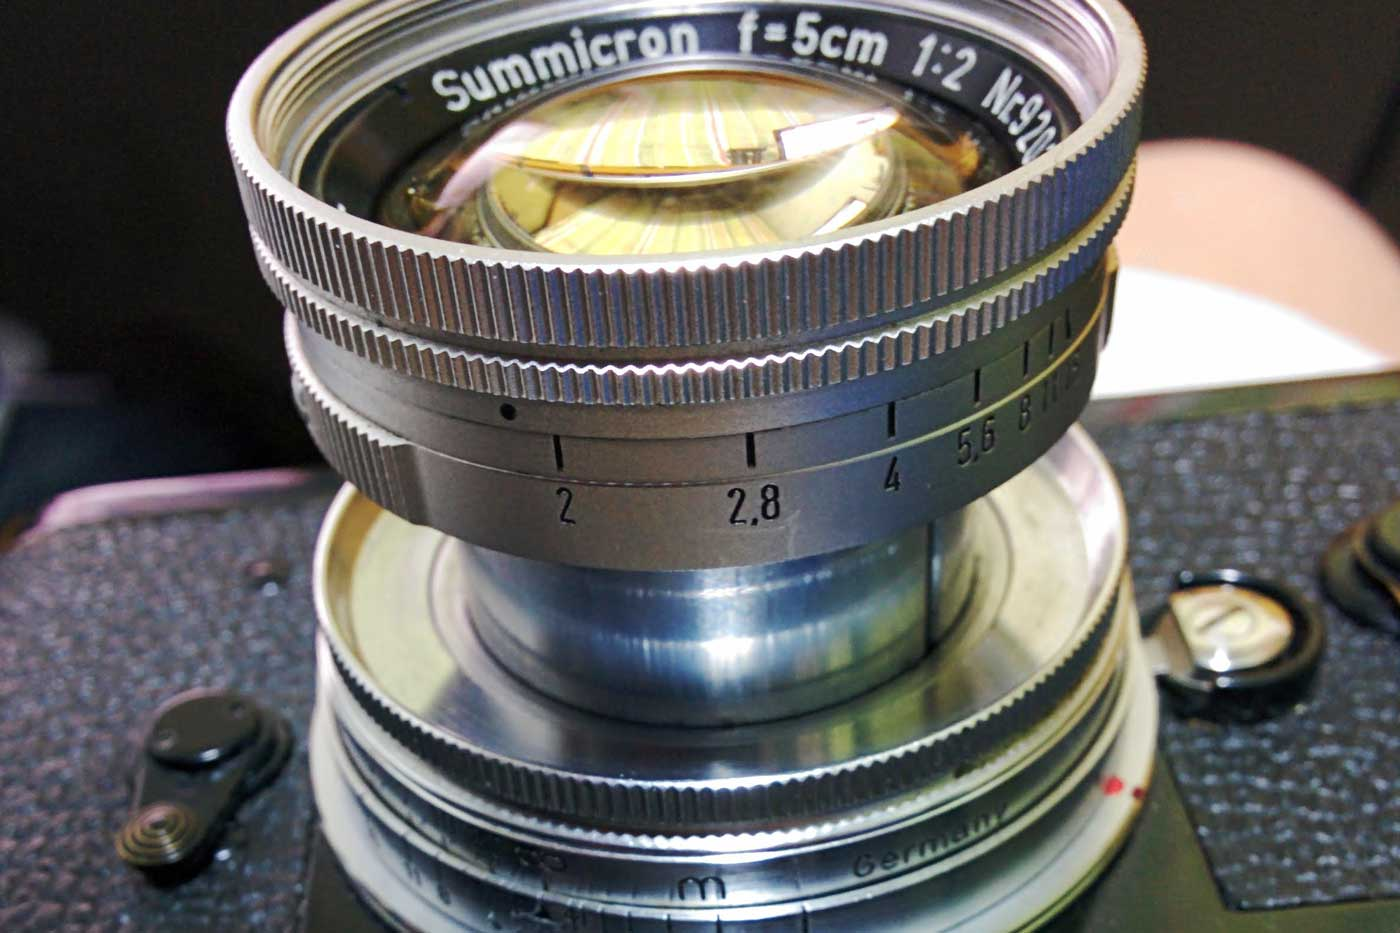 Leica-summicron-50mm-f2-50-f2.0-collapsible-v1-cron-lens-review-screw-bayonet-m-mount-radioactive-lathanum-camera-gears-film-hcb-black-and-white-l39-ltm-apertuer-ring